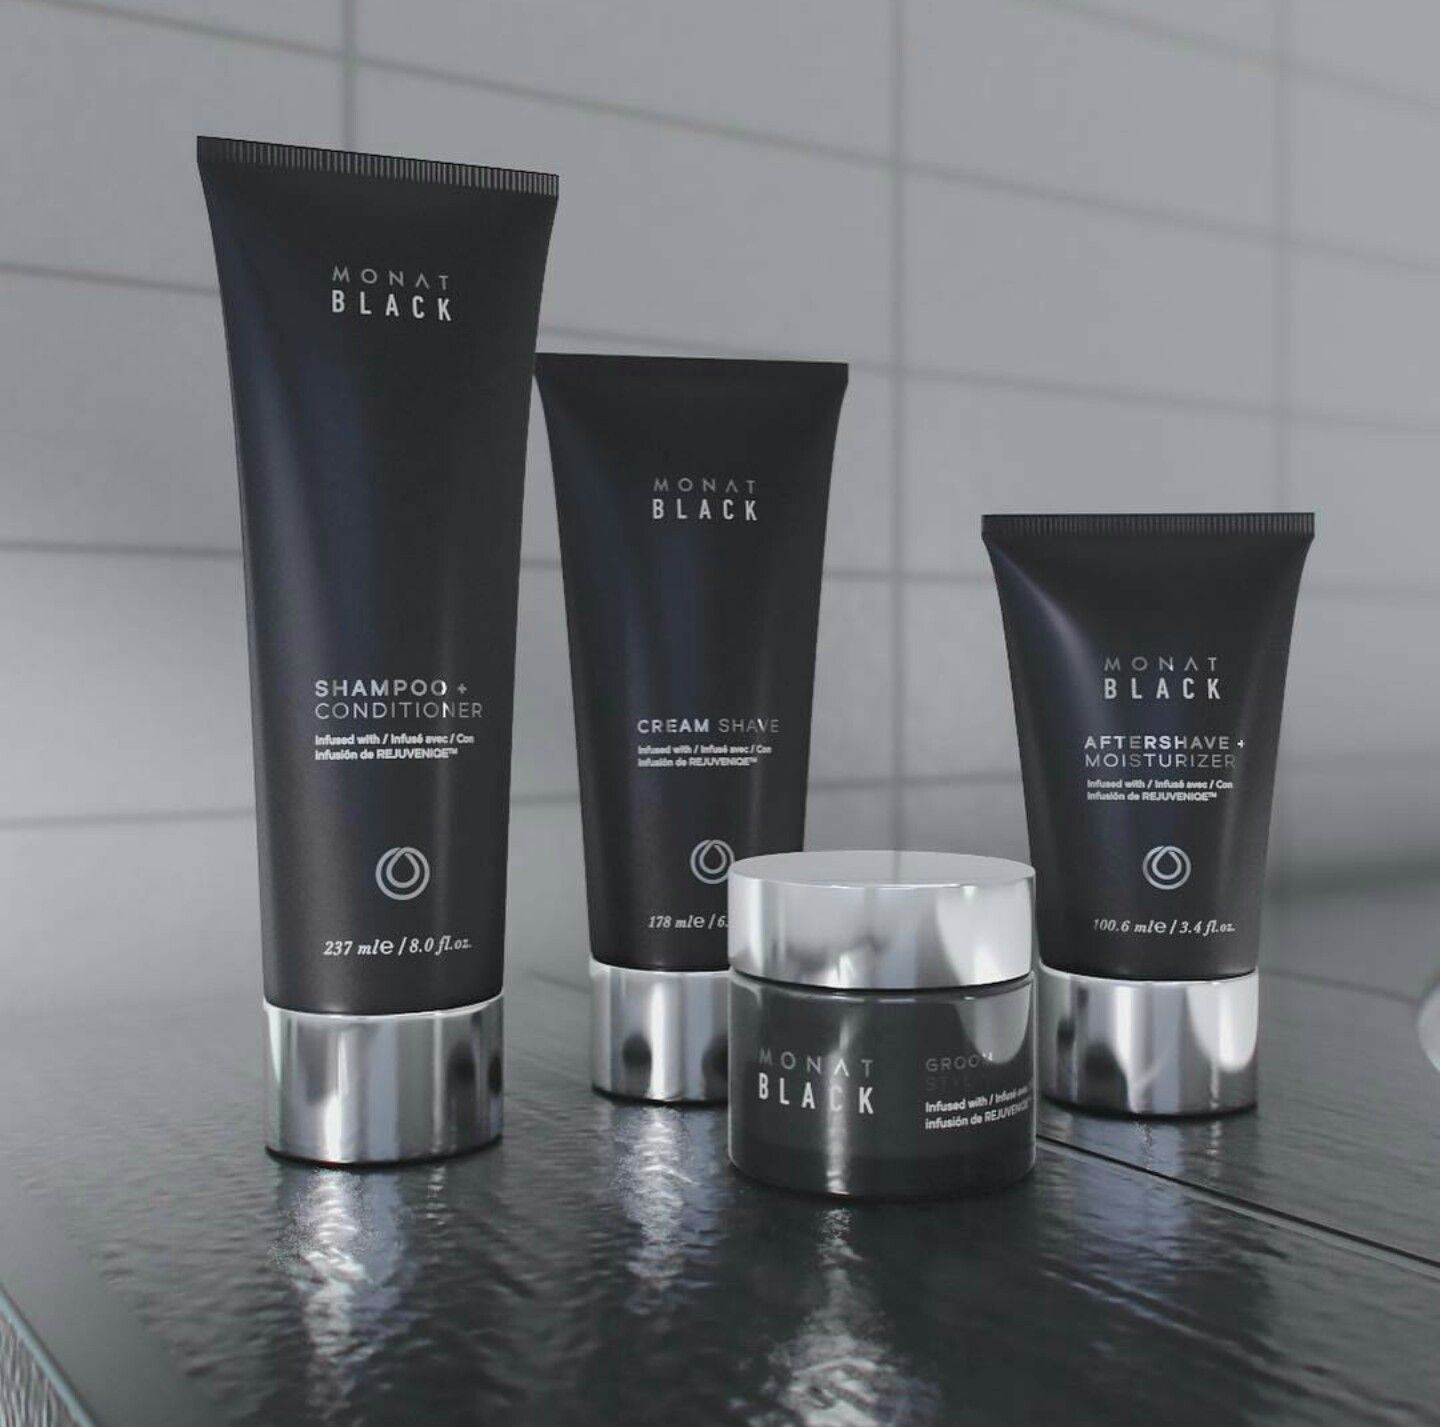 The MONATBlack system is made specifically for men! It